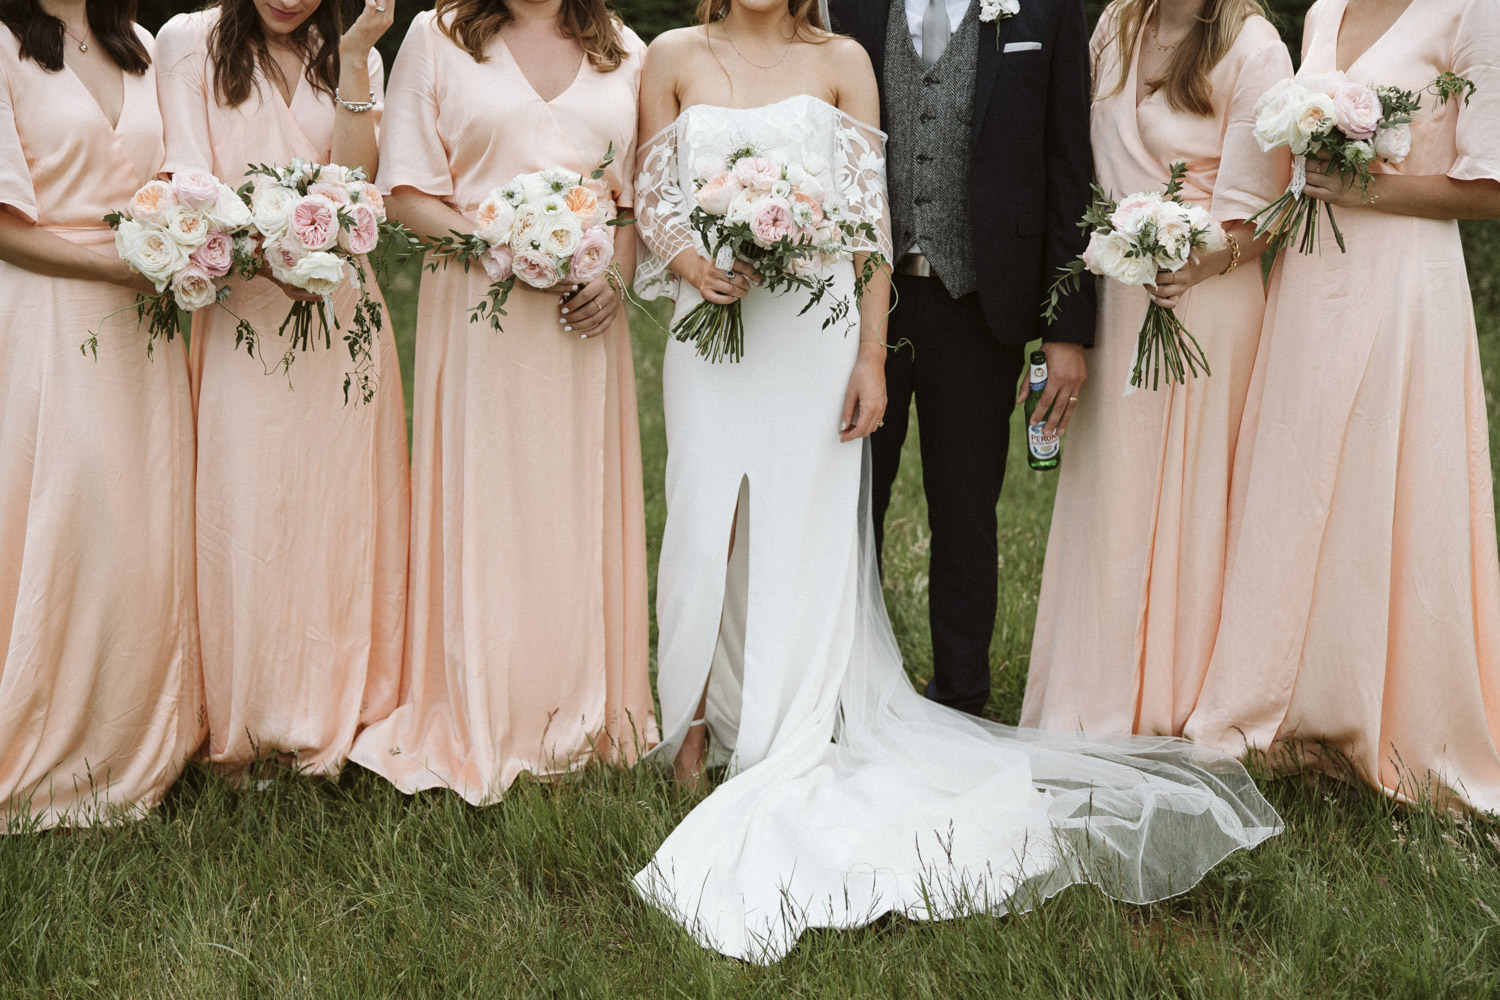 the bride and bridesmaids gowns